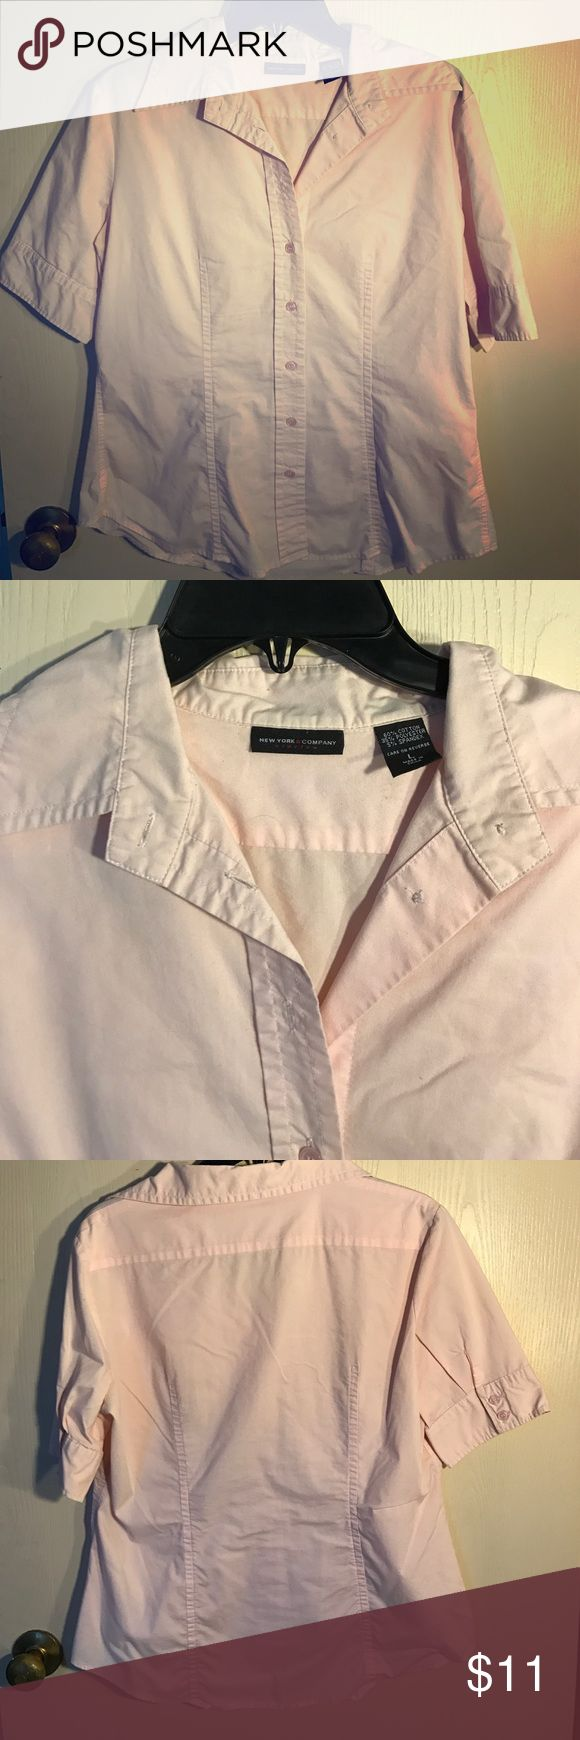 Light pink Short Sleeve Dress Shirt 👚 Light pink (almost white) button down shirt. Work once to job interview. Darting on front and back gives a feminine shape. Buttons on sleeves New York & Company Tops Button Down Shirts